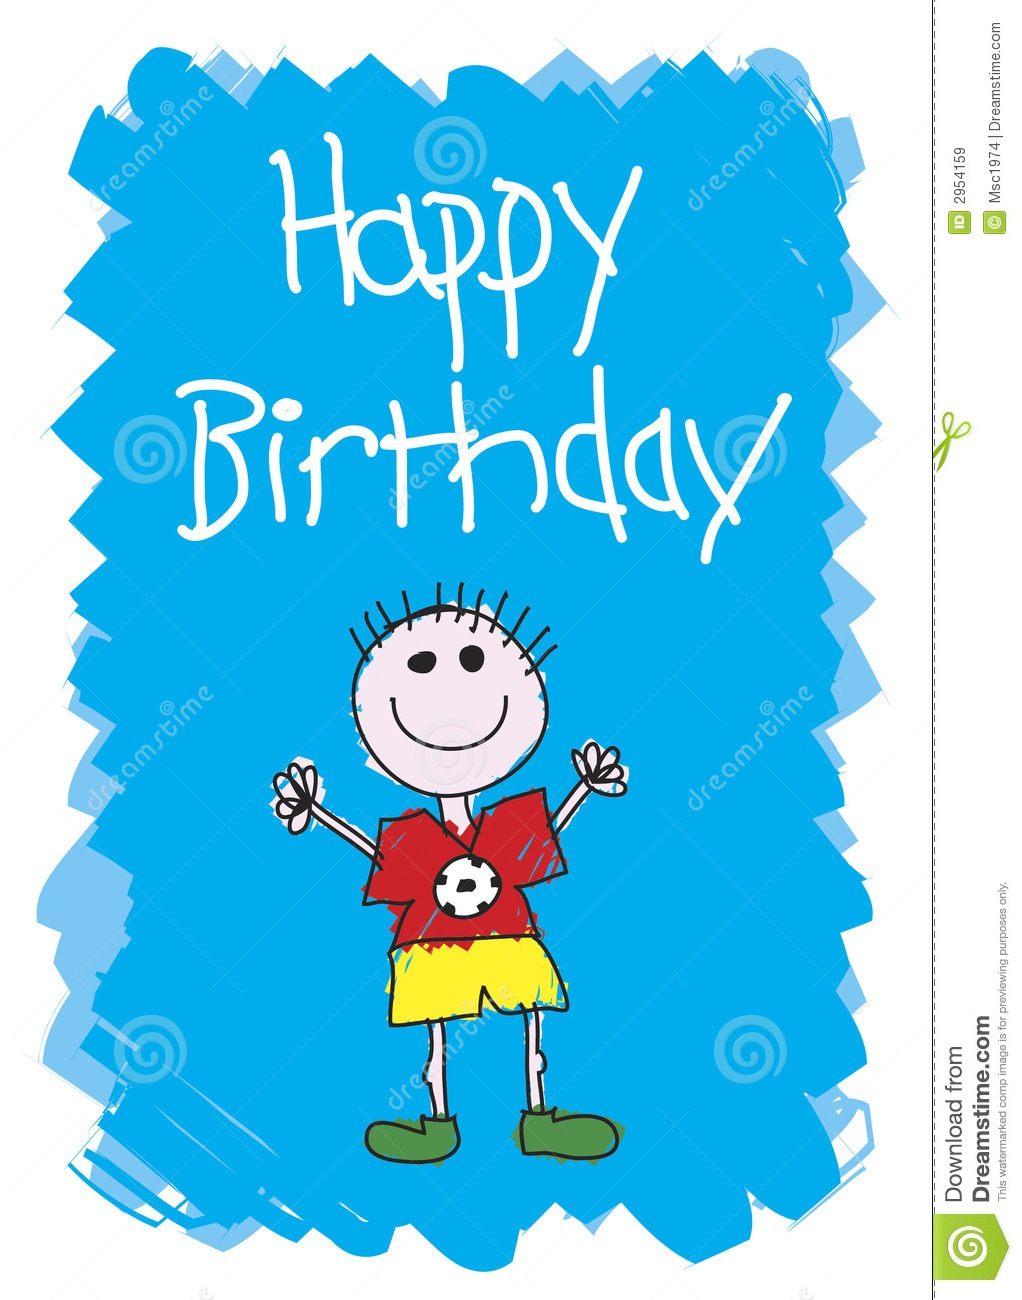 happy birthday boy ; happy-birthday-boy-royalty-free-stock-image-happy-birthday-card-for-boy-happy-birthday-card-for-boy